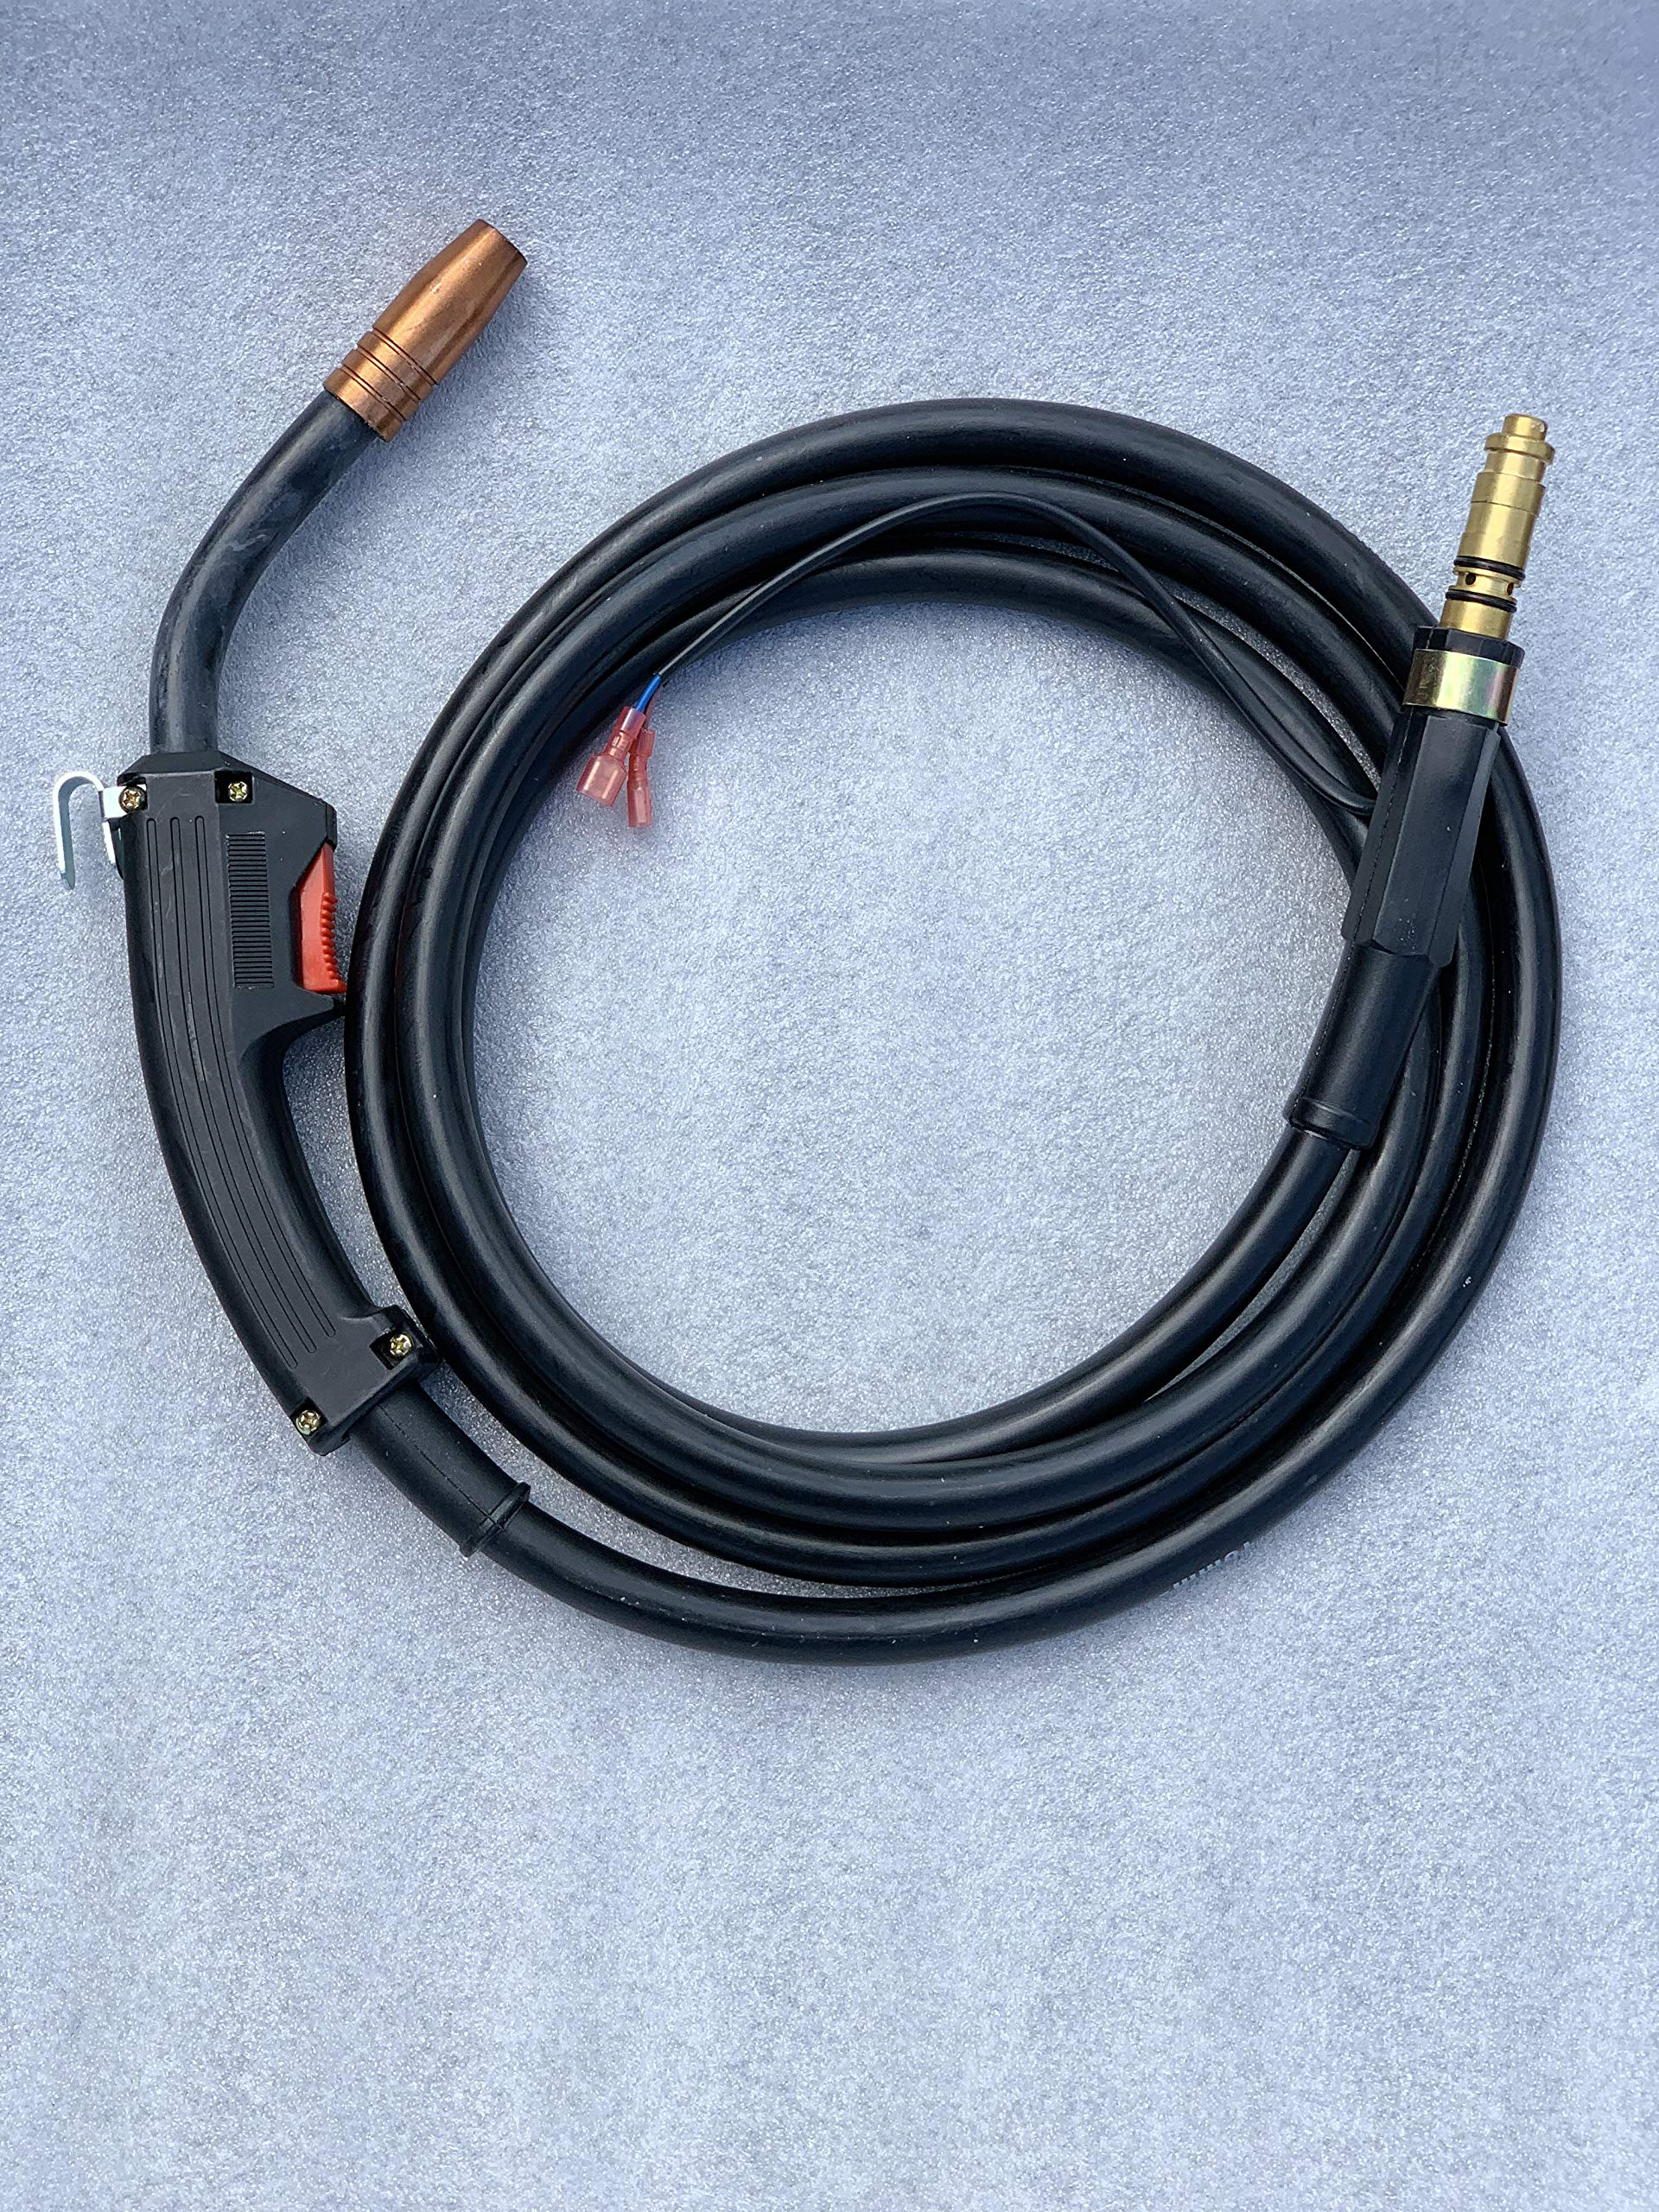 Lincoln Magnum 100L K530-5 Replacement MIG Welding Gun Torch 100A 10' 100 amp k530-5 by Coplay Norstar